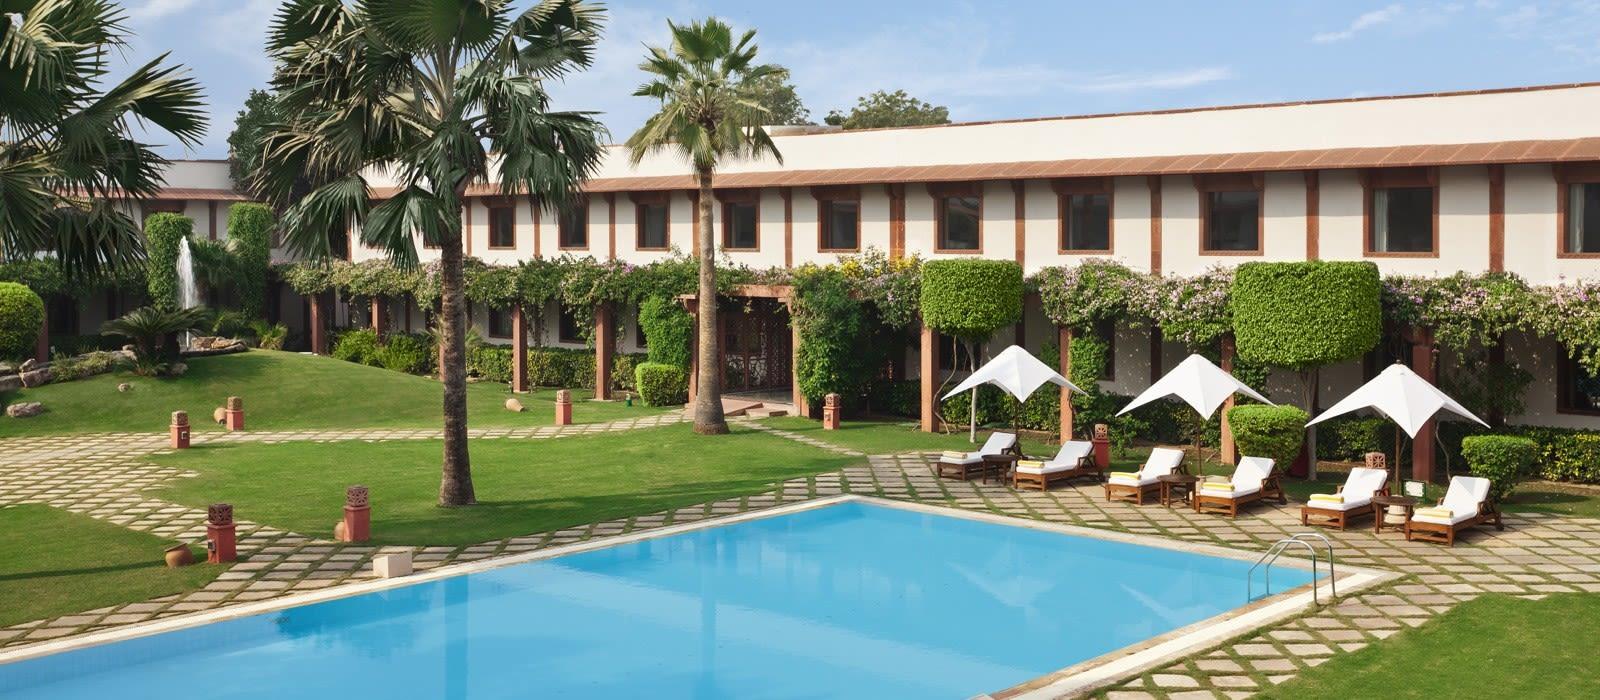 Hotel The Trident, Agra Nordindien